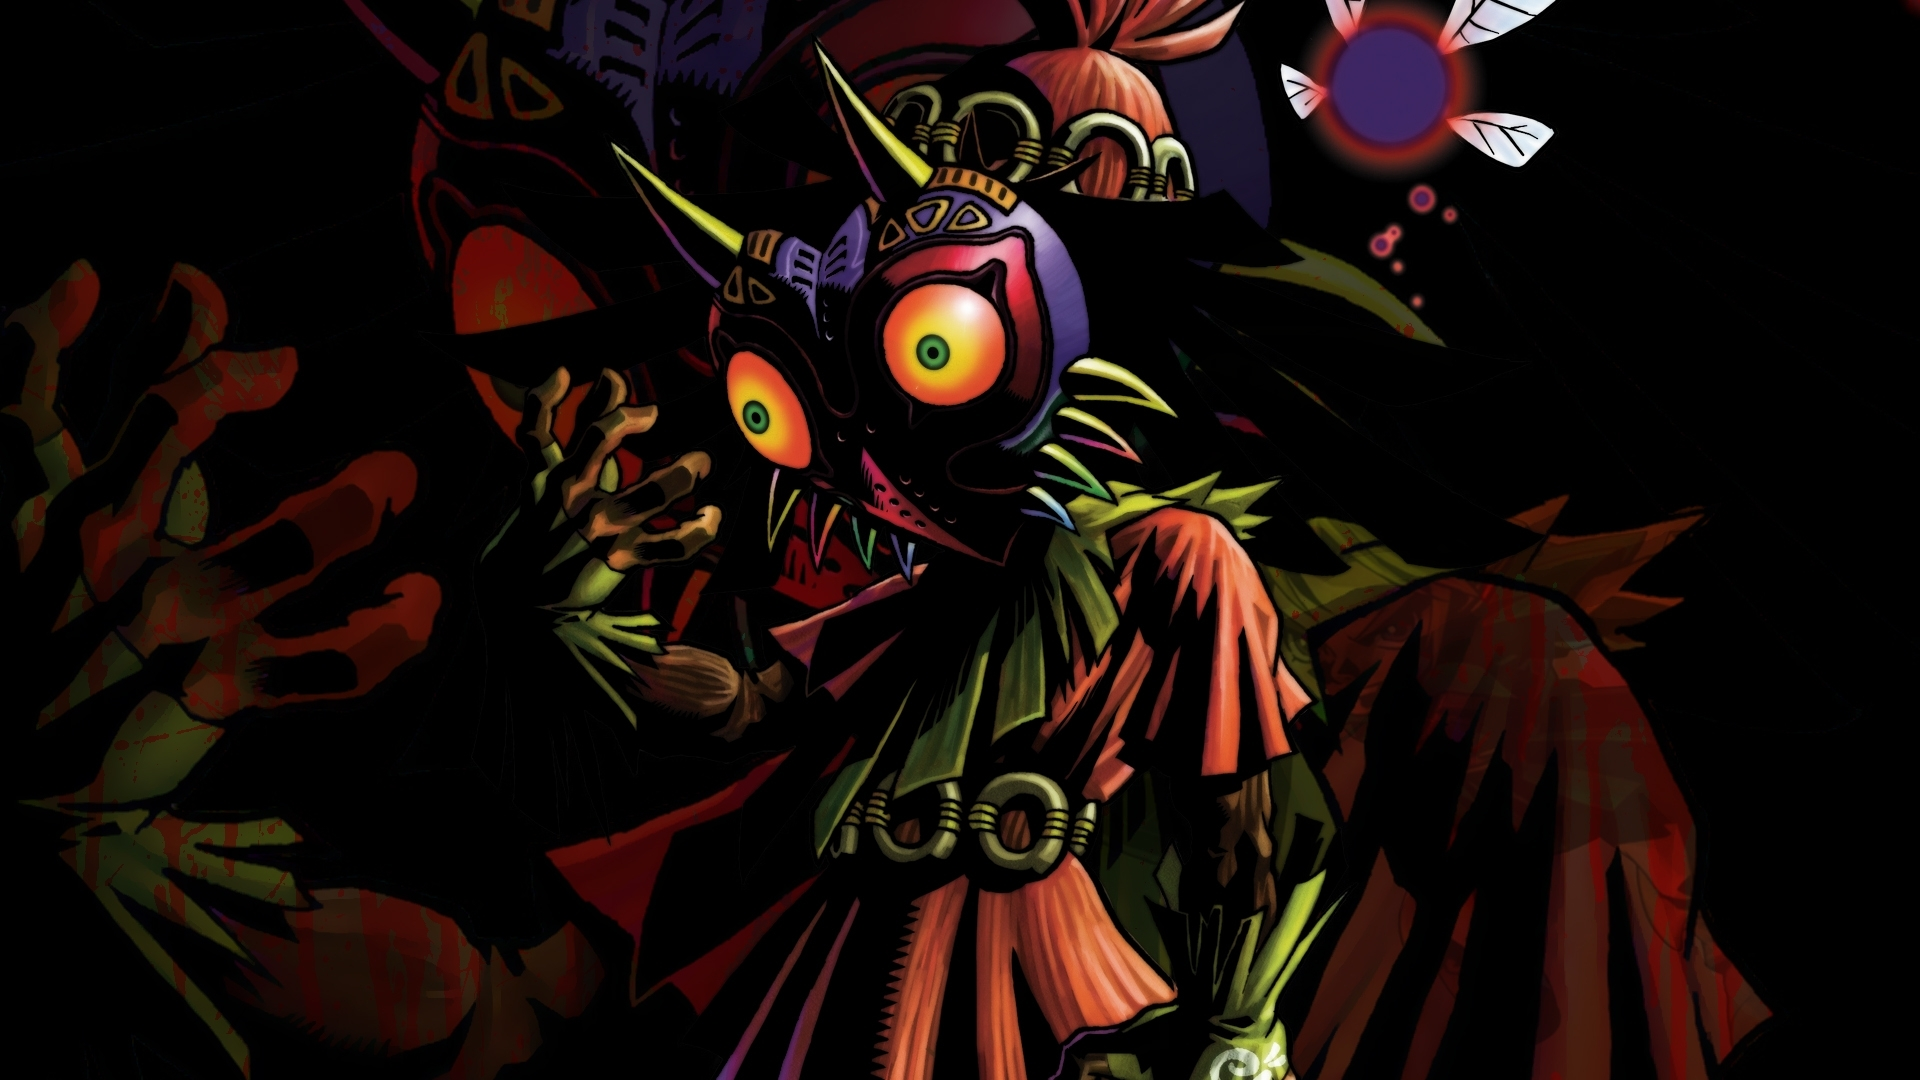 10 Best Majoras Mask Skull Kid Wallpaper FULL HD 1080p For PC Background 2018 Free Download